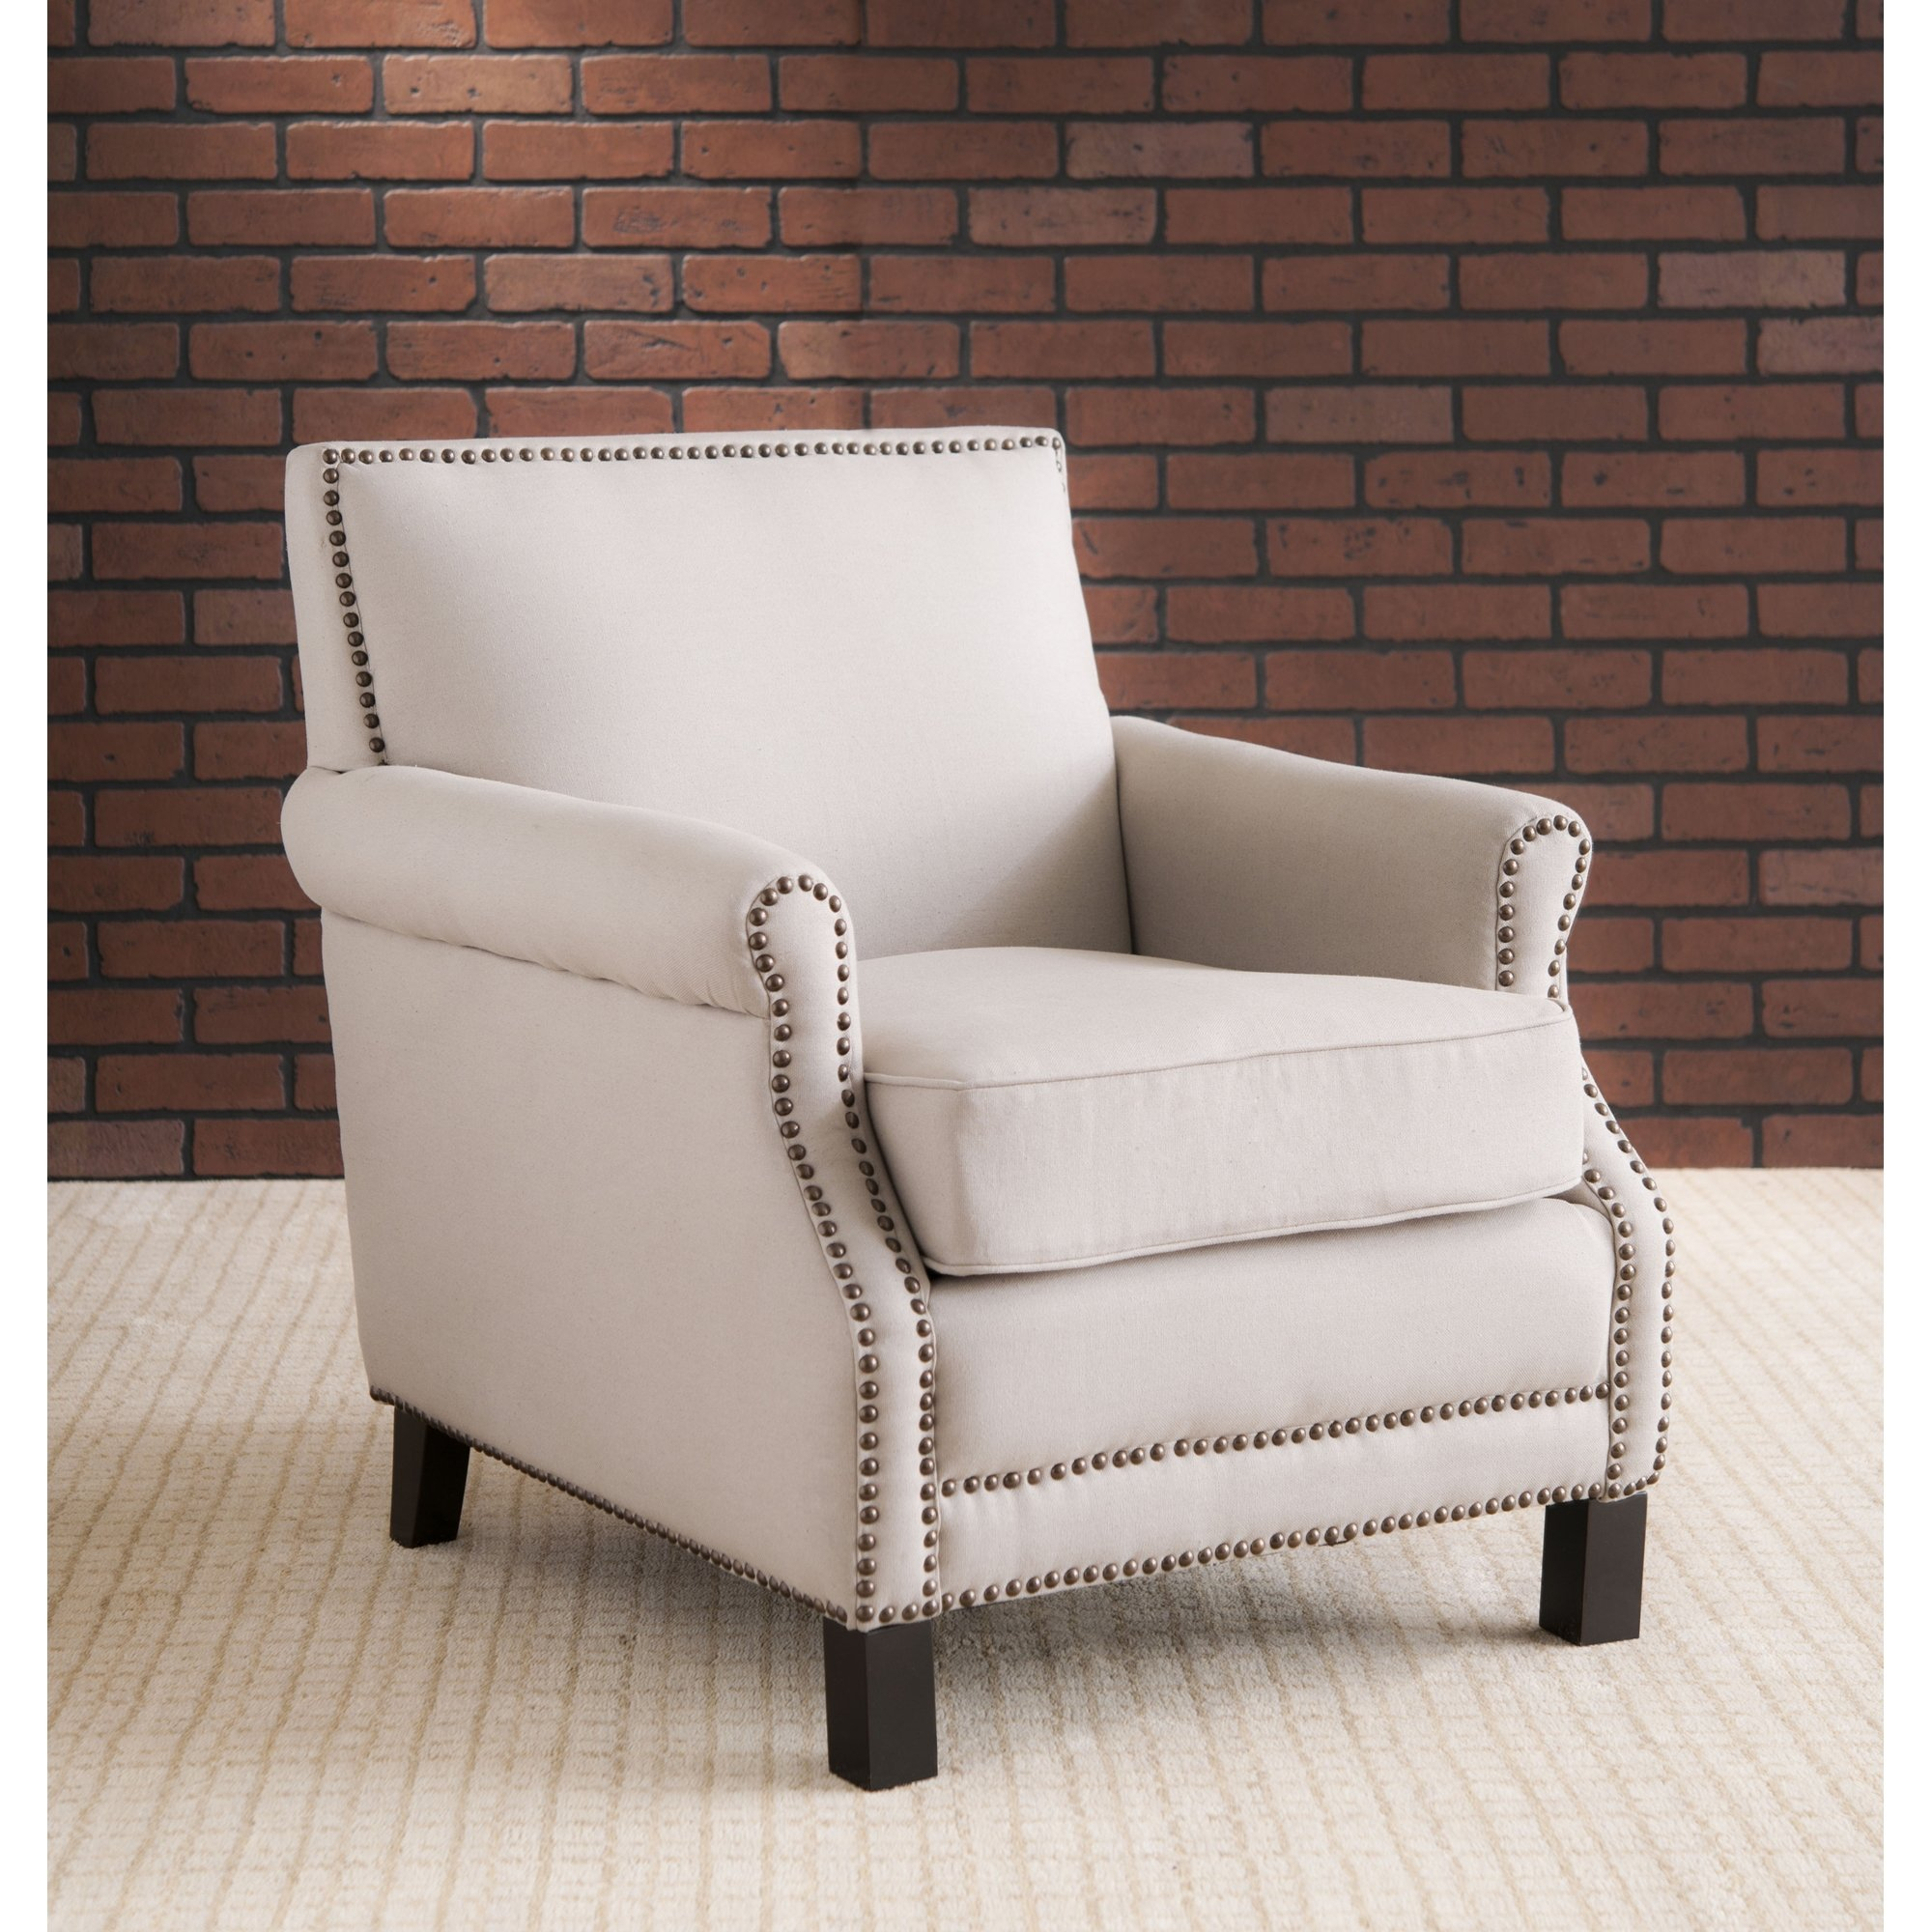 Shop Safavieh Mansfield Beige Club Chair – Free Shipping Today Pertaining To Mansfield Beige Linen Sofa Chairs (View 2 of 25)